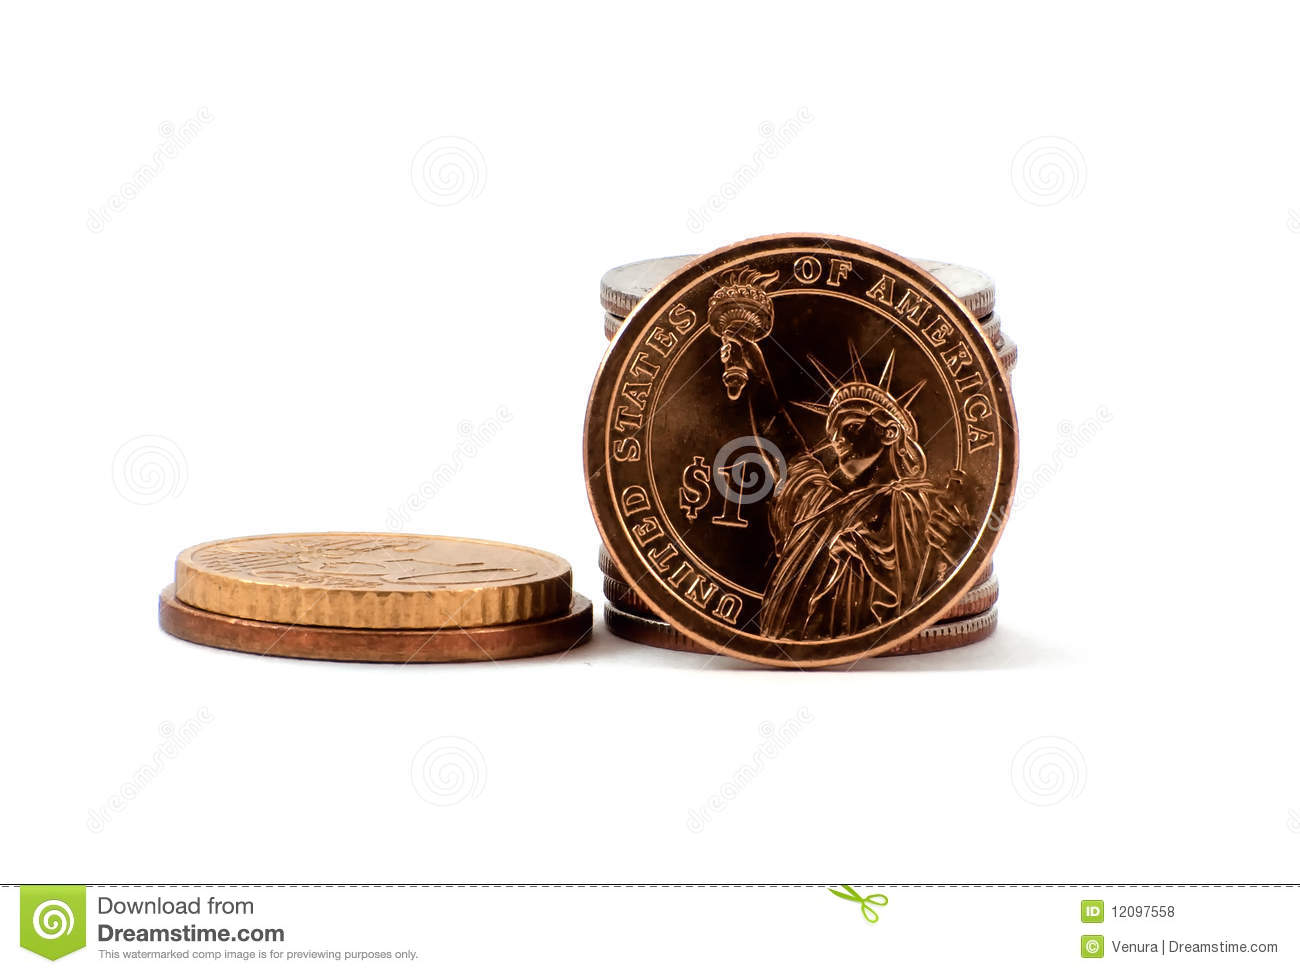 Liberty dollar coin with quarters and nickels